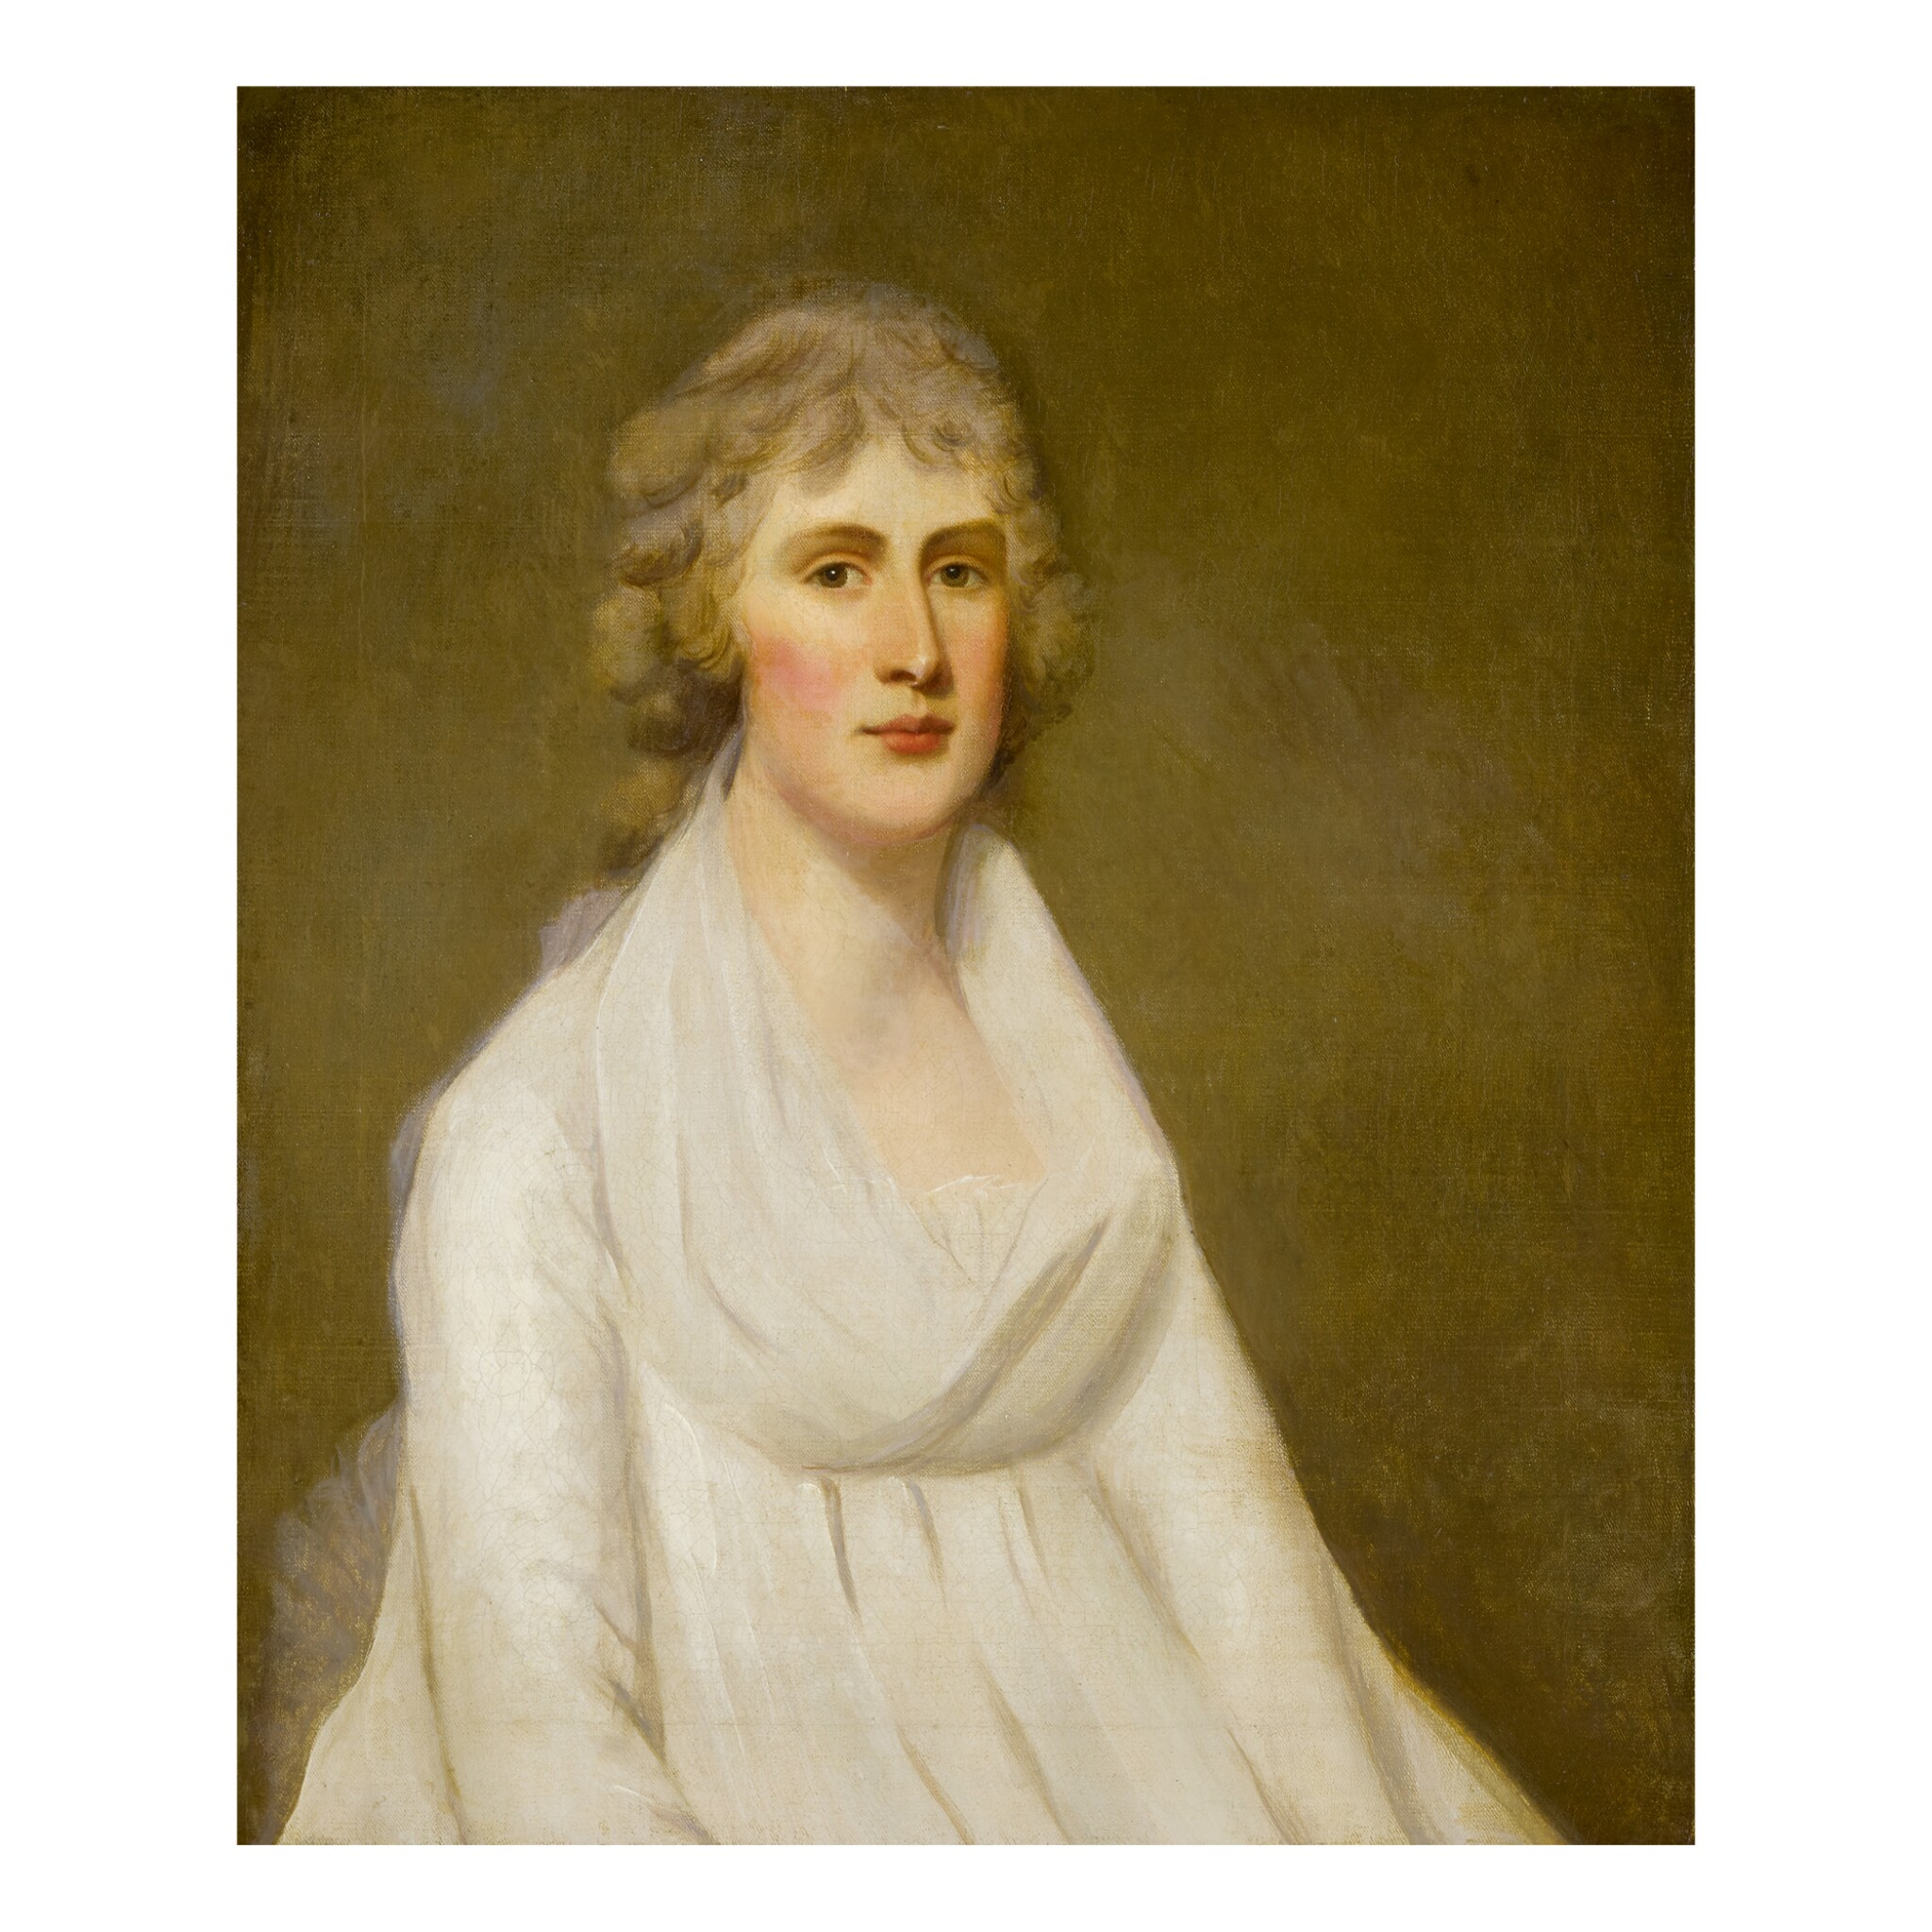 View full screen - View 1 of Lot 153. CIRCLE OF SIR HENRY RAEBURN, R.A. | PORTRAIT OF LADY SEATON.